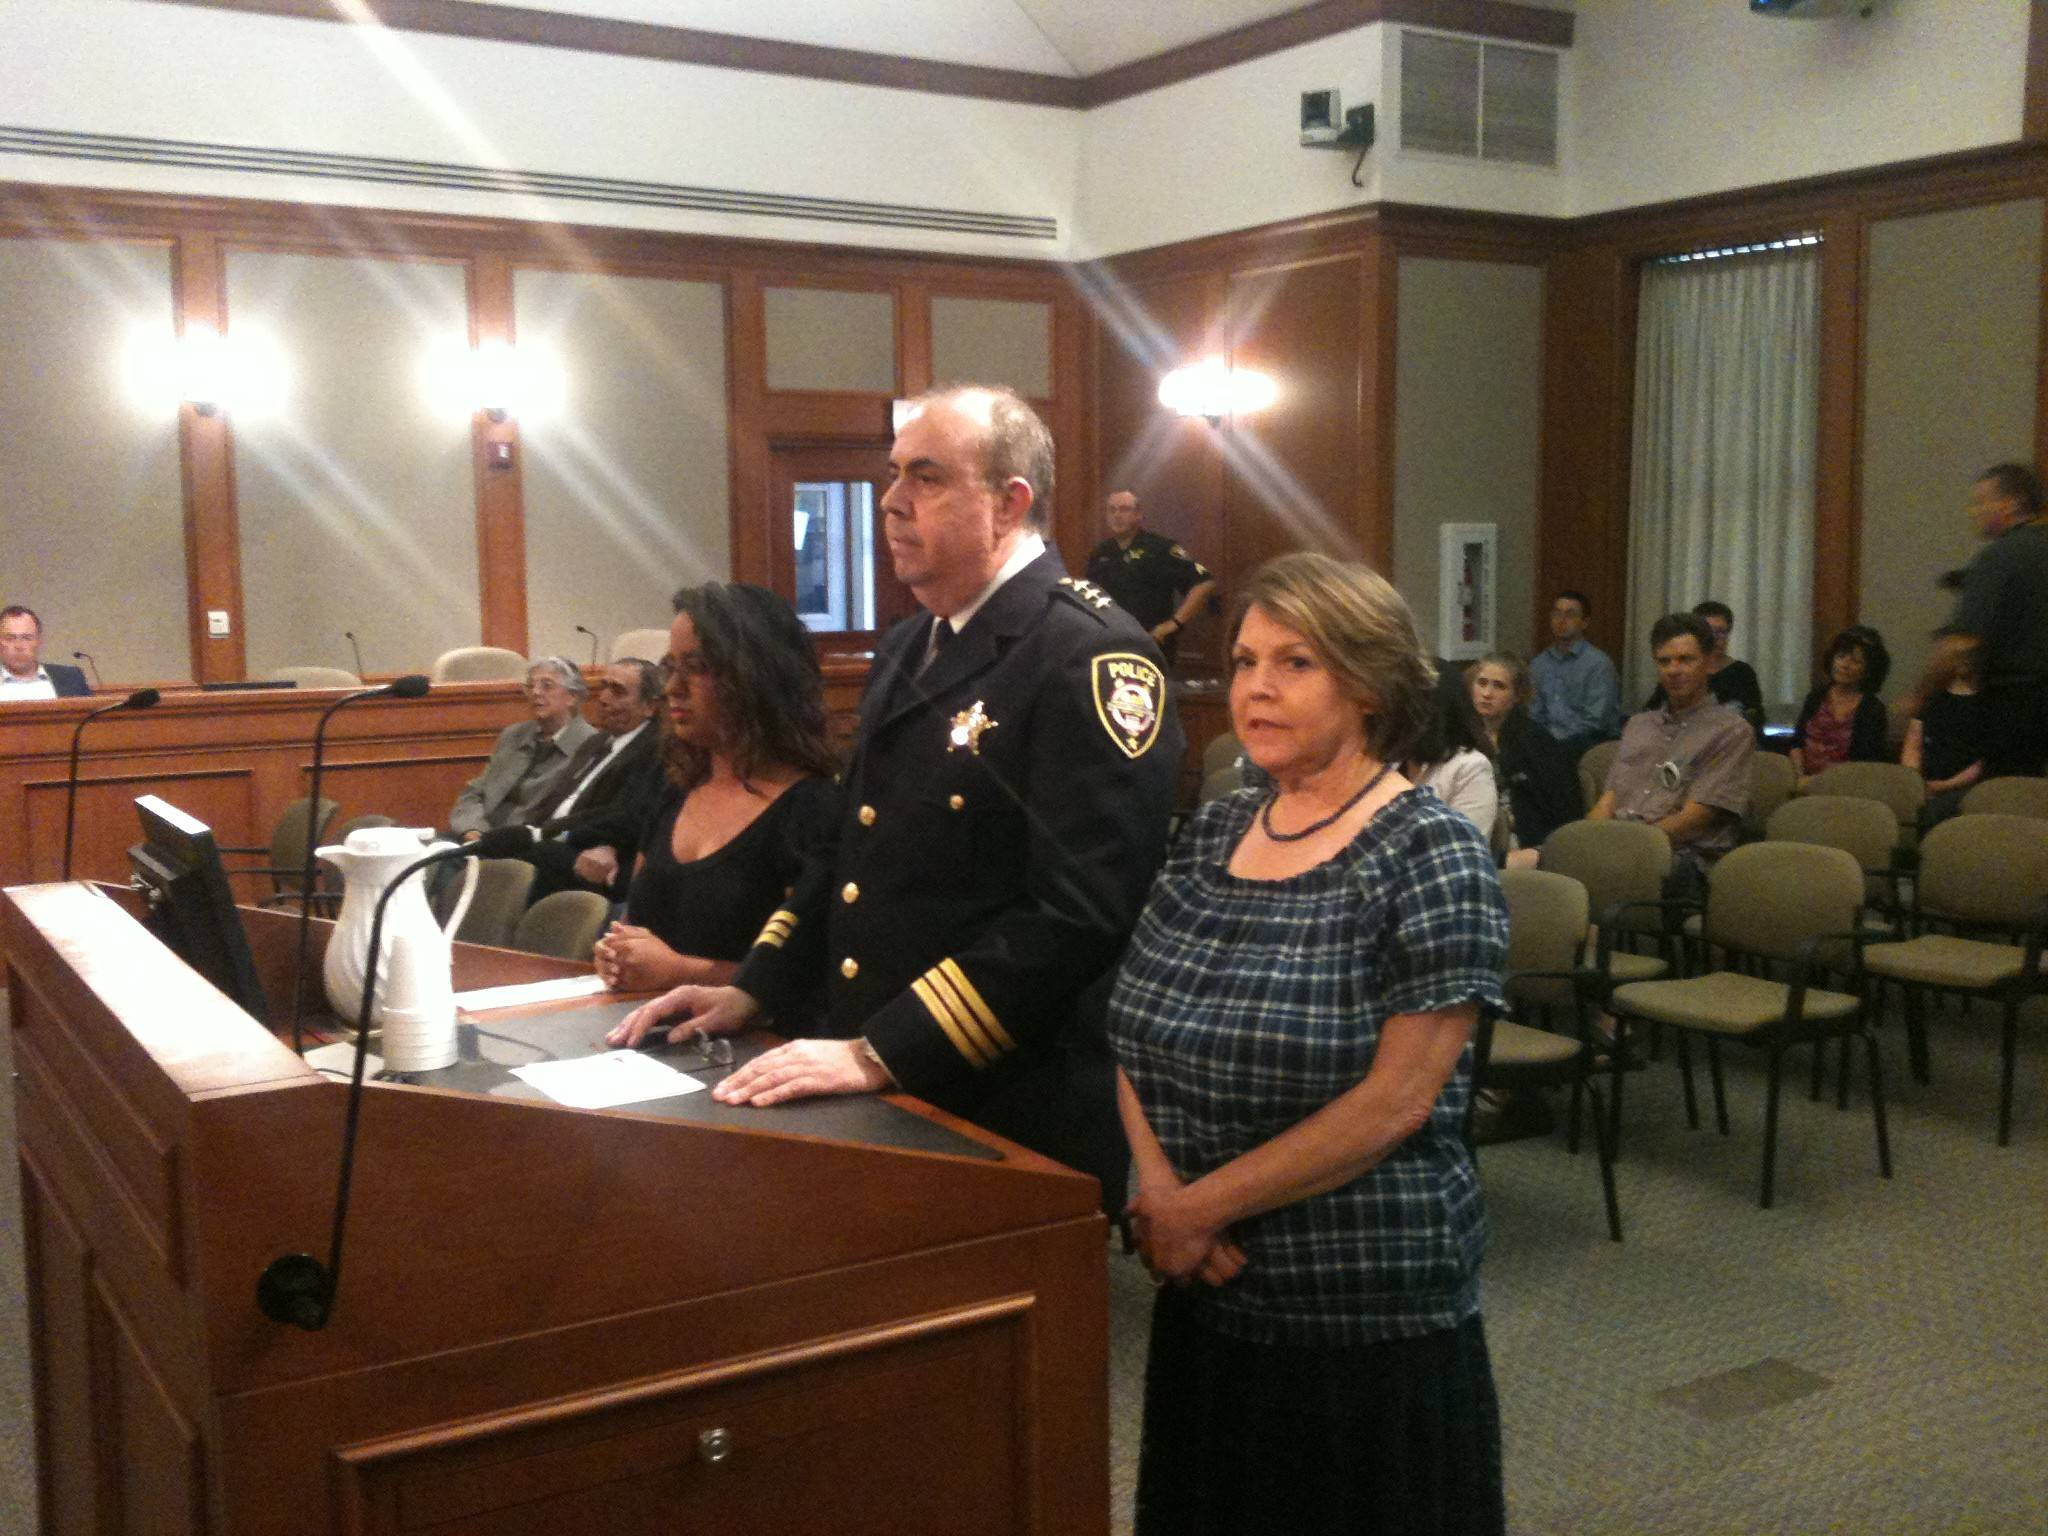 Retiring Mount Prospect Police Chief Michael Semkiu is honored at the MP village board on June 3, 2014 flanked by his wife Rosann and his daughter, Rebecca.